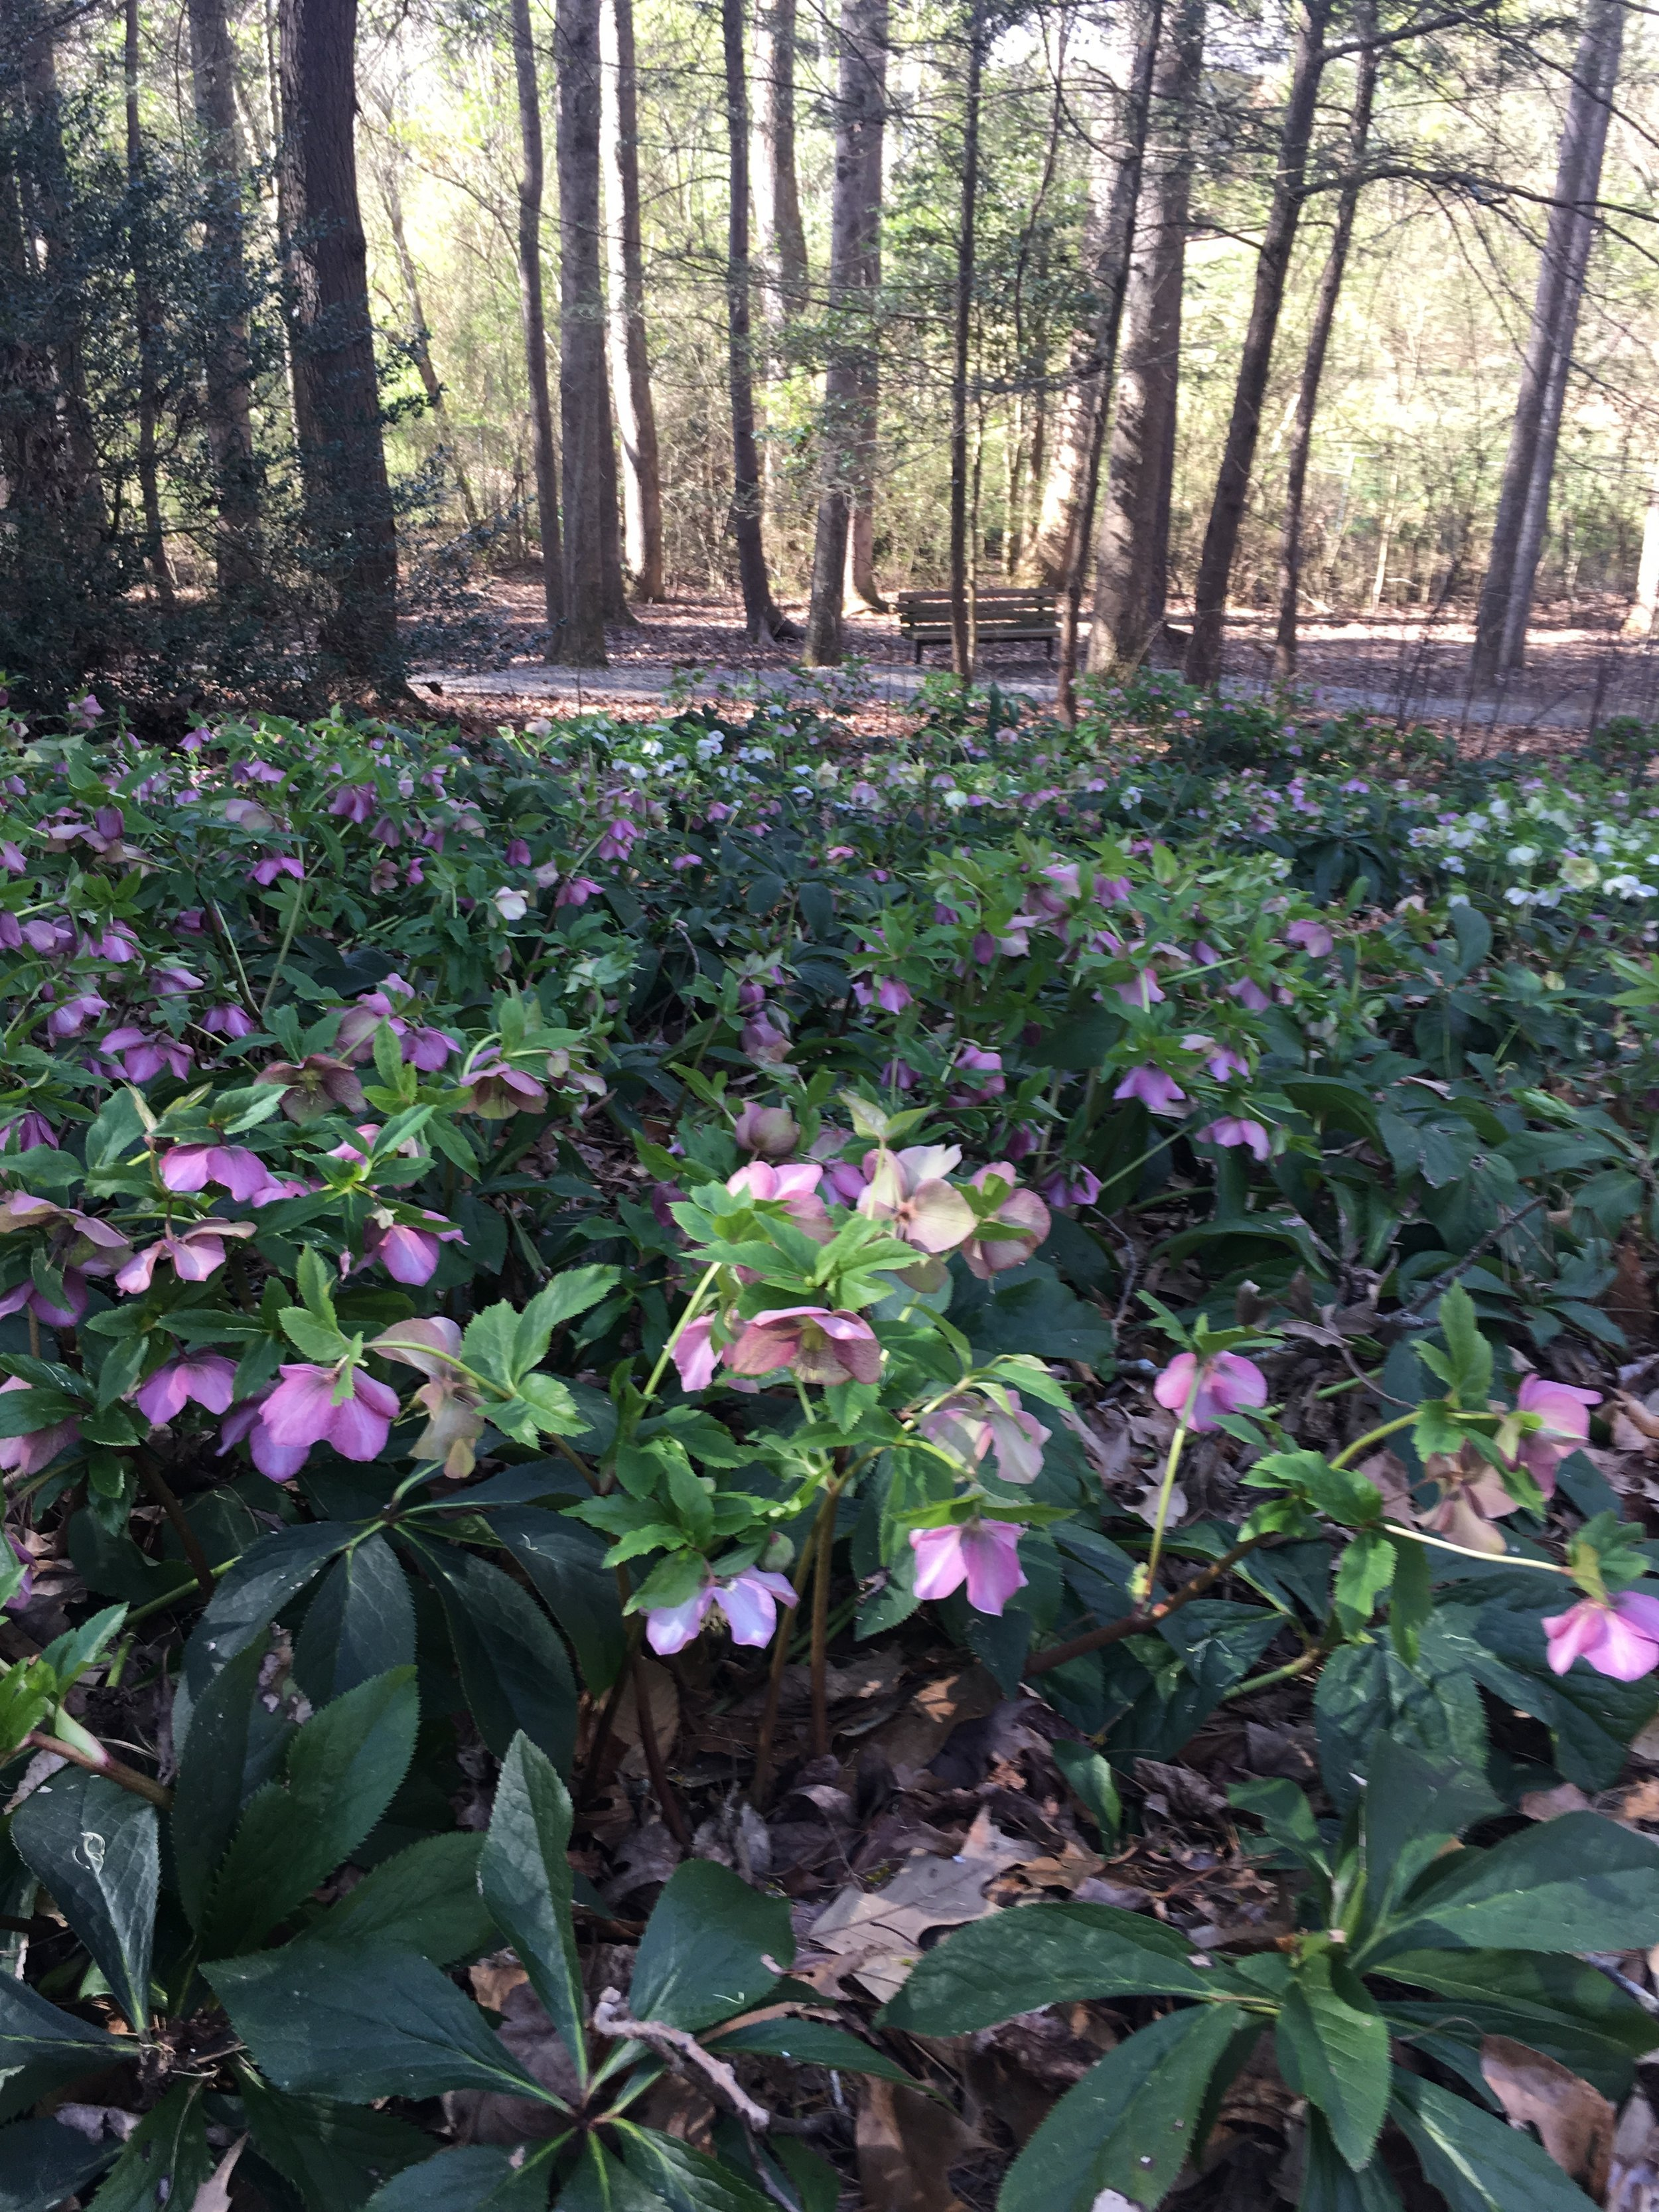 Hellebores prefer dry shade, bloom in winter, are evergreen, act as a groundcover and rarely need division. They are relatively pest and disease free making them an essential low maintenance perennial.